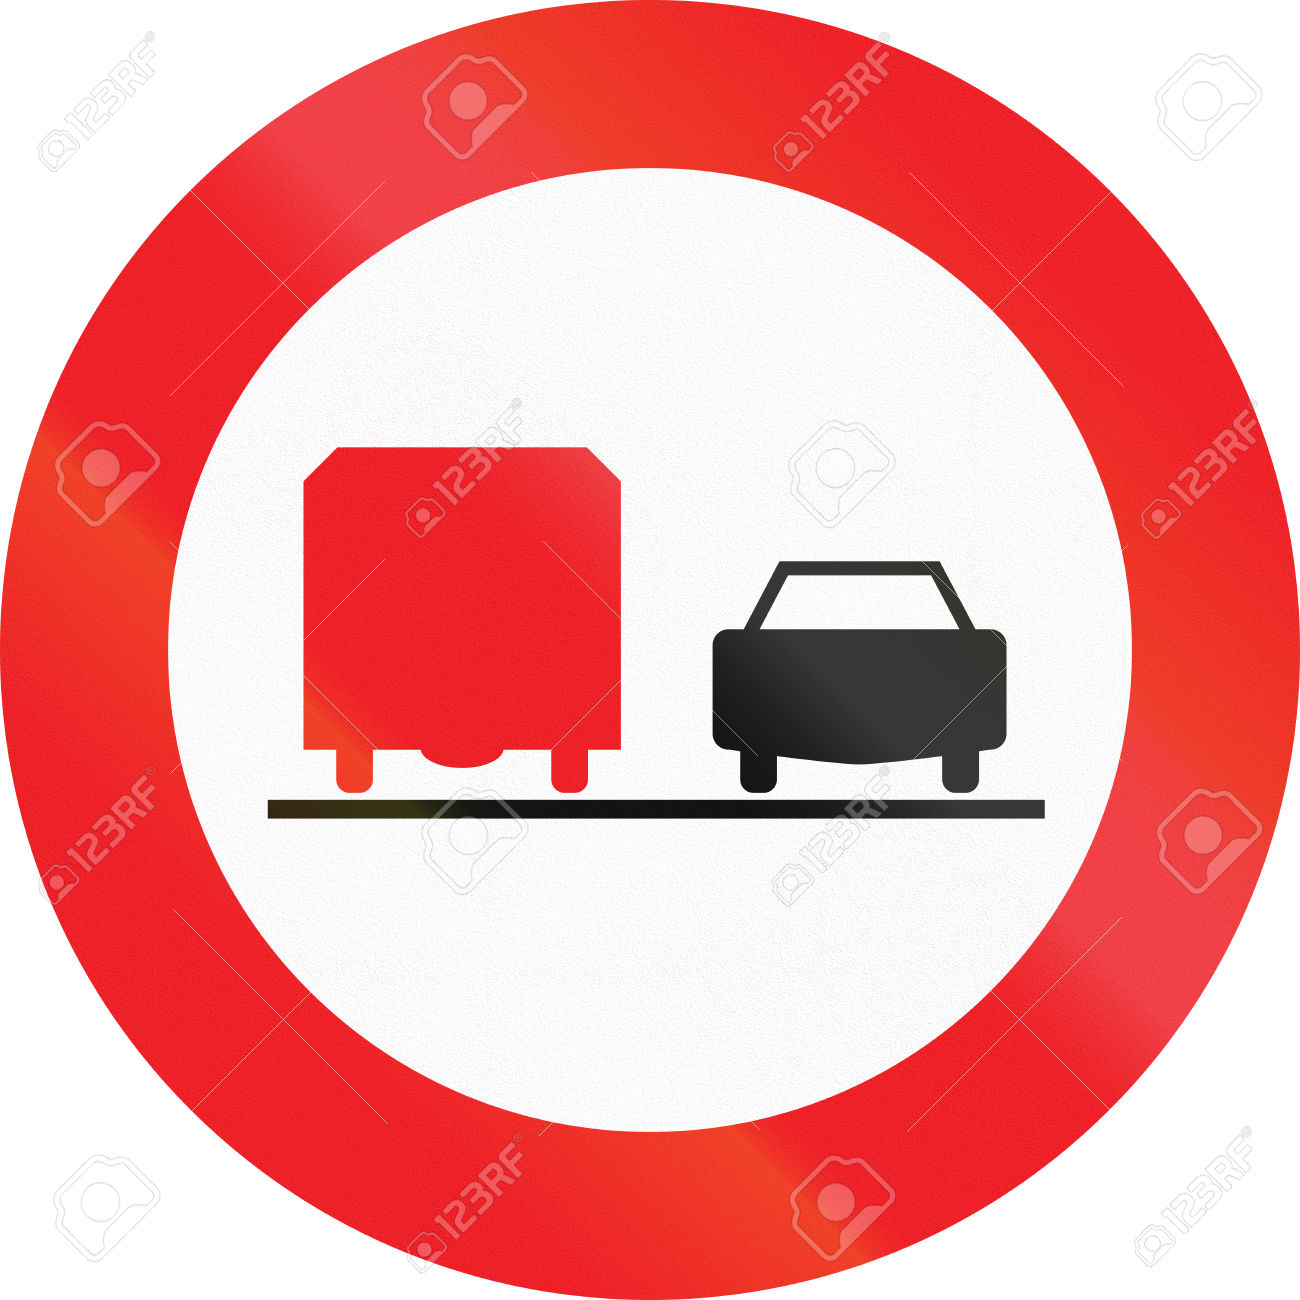 Austrian Traffic Sign: No Overtaking By Lorries! Stock Photo.